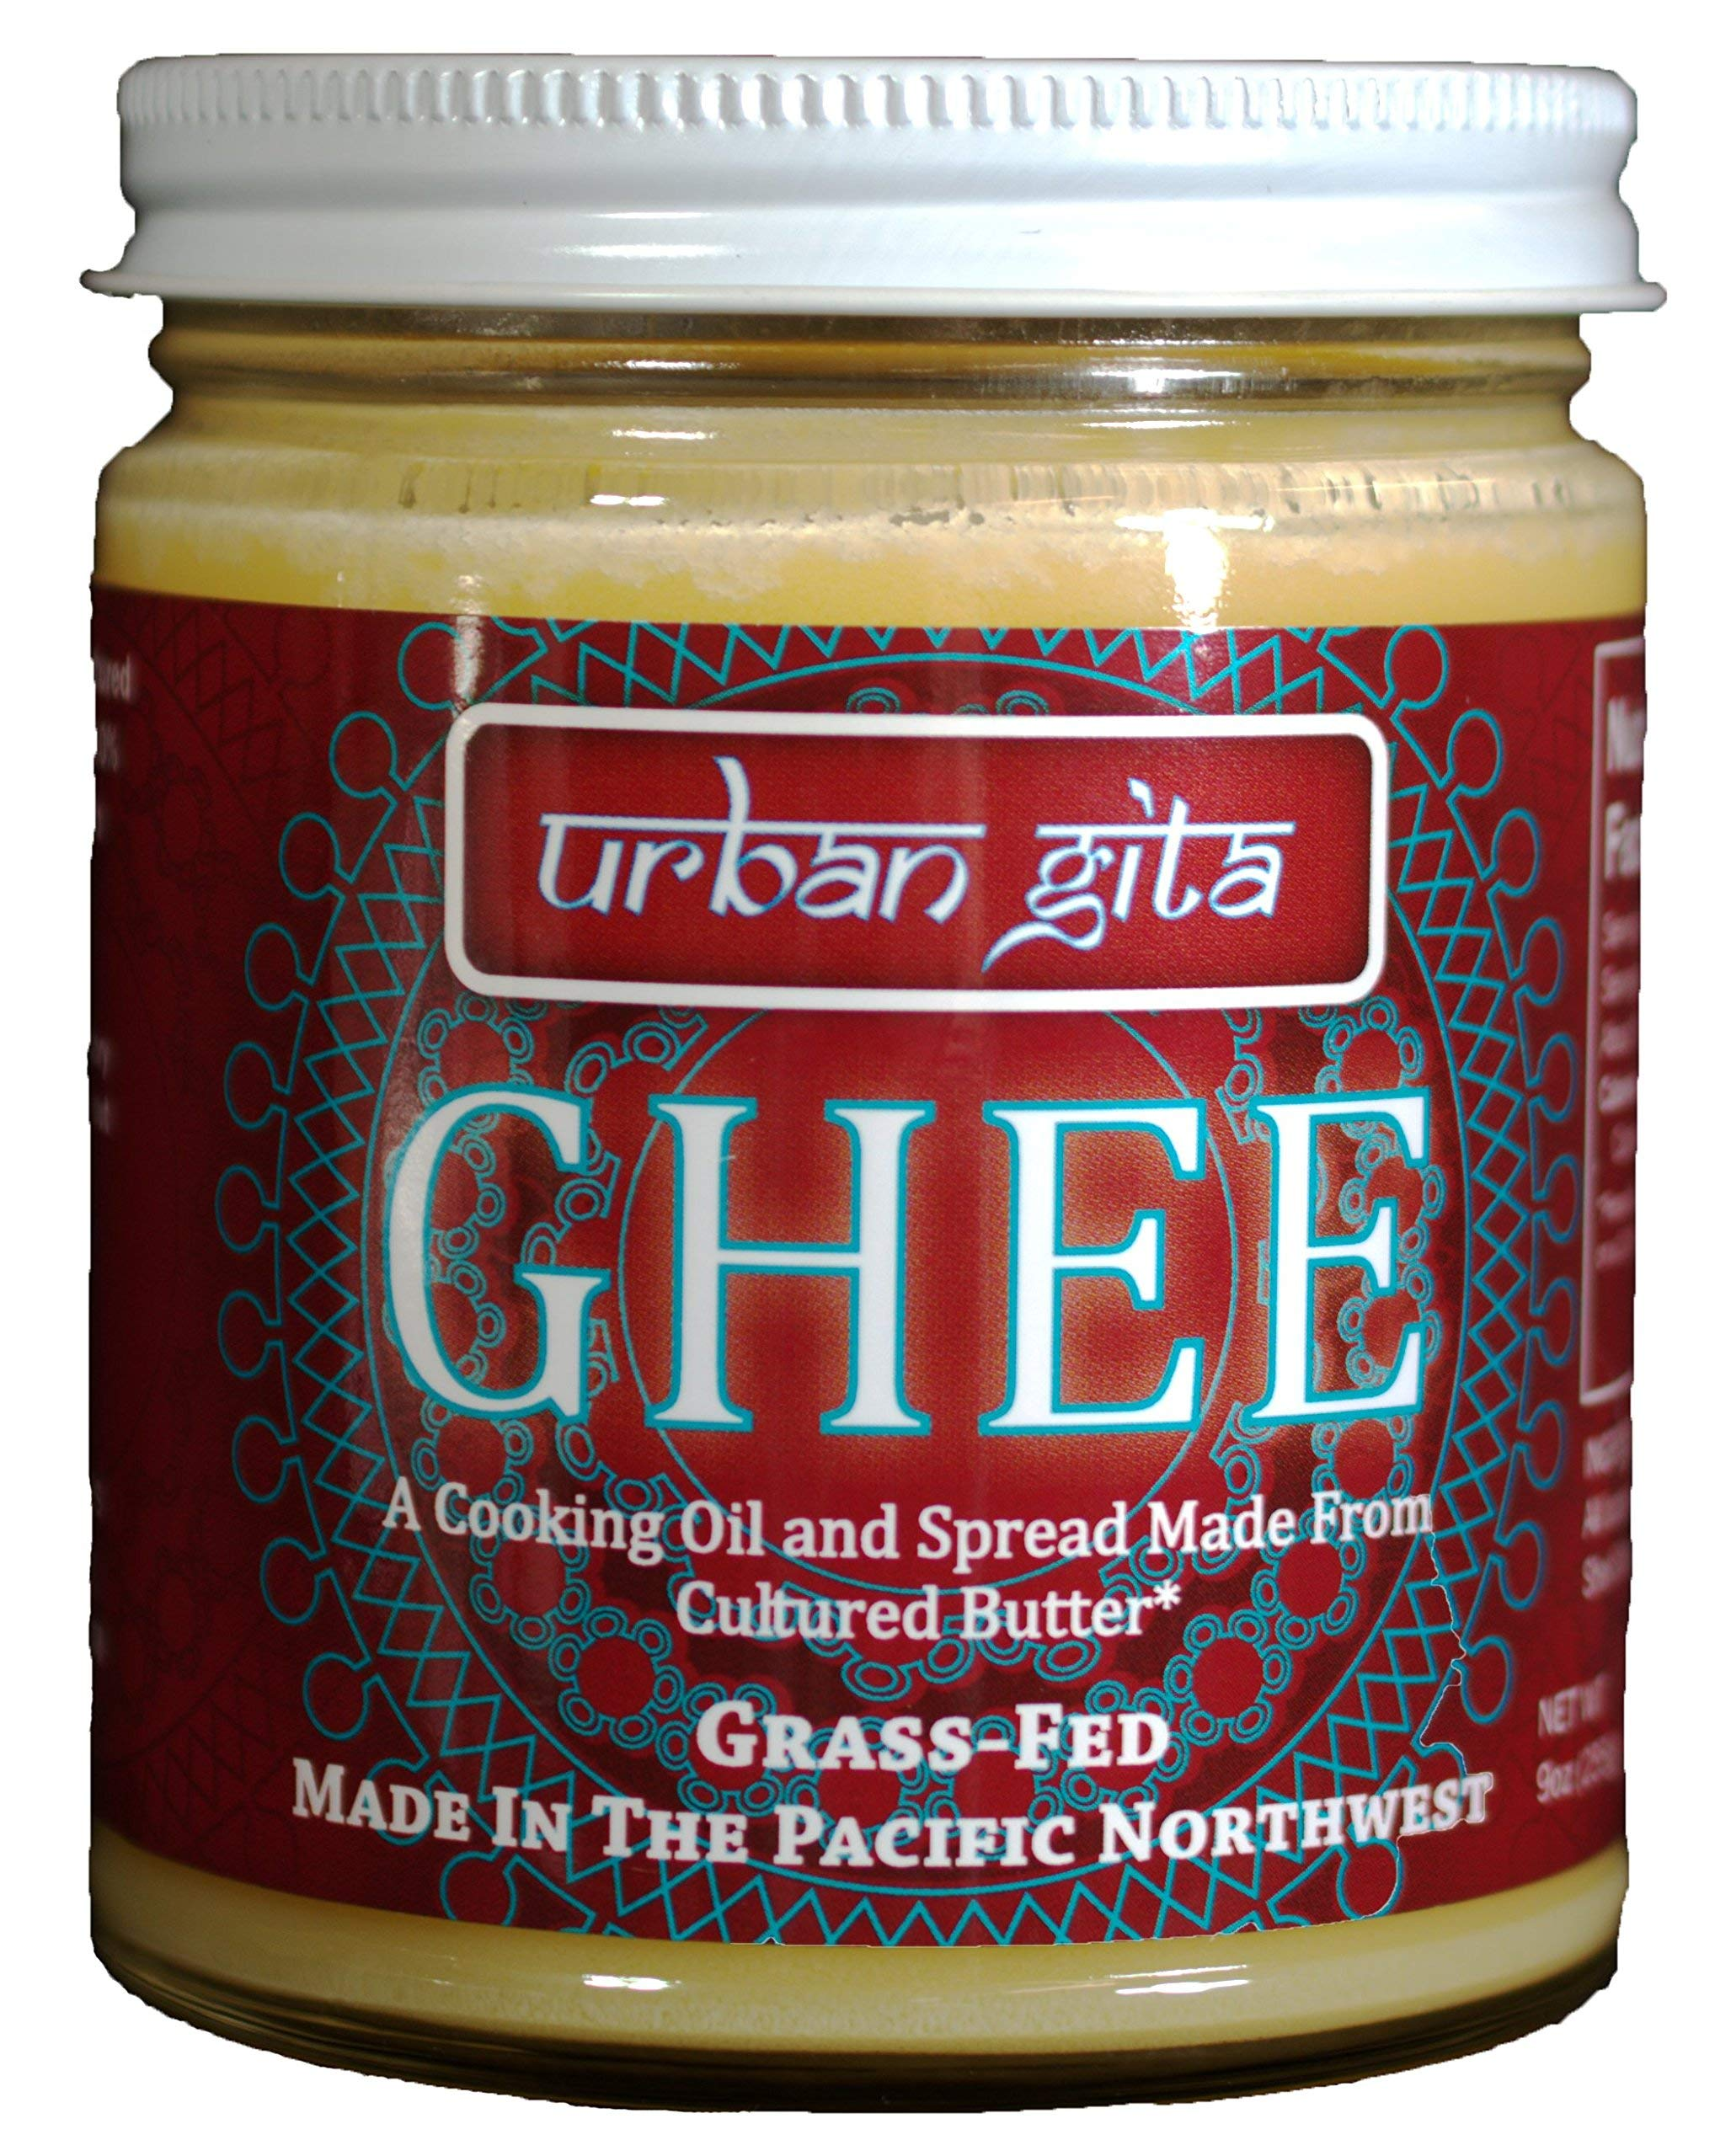 Popped Sorghum Organic Ghee 4.3 oz (6 pack)- A Snack Healthier Than Popcorn: Gluten Free, Non GMO, Low In Lectin, Popped In Oil by Nature Nate's Natural Foods (Image #1)